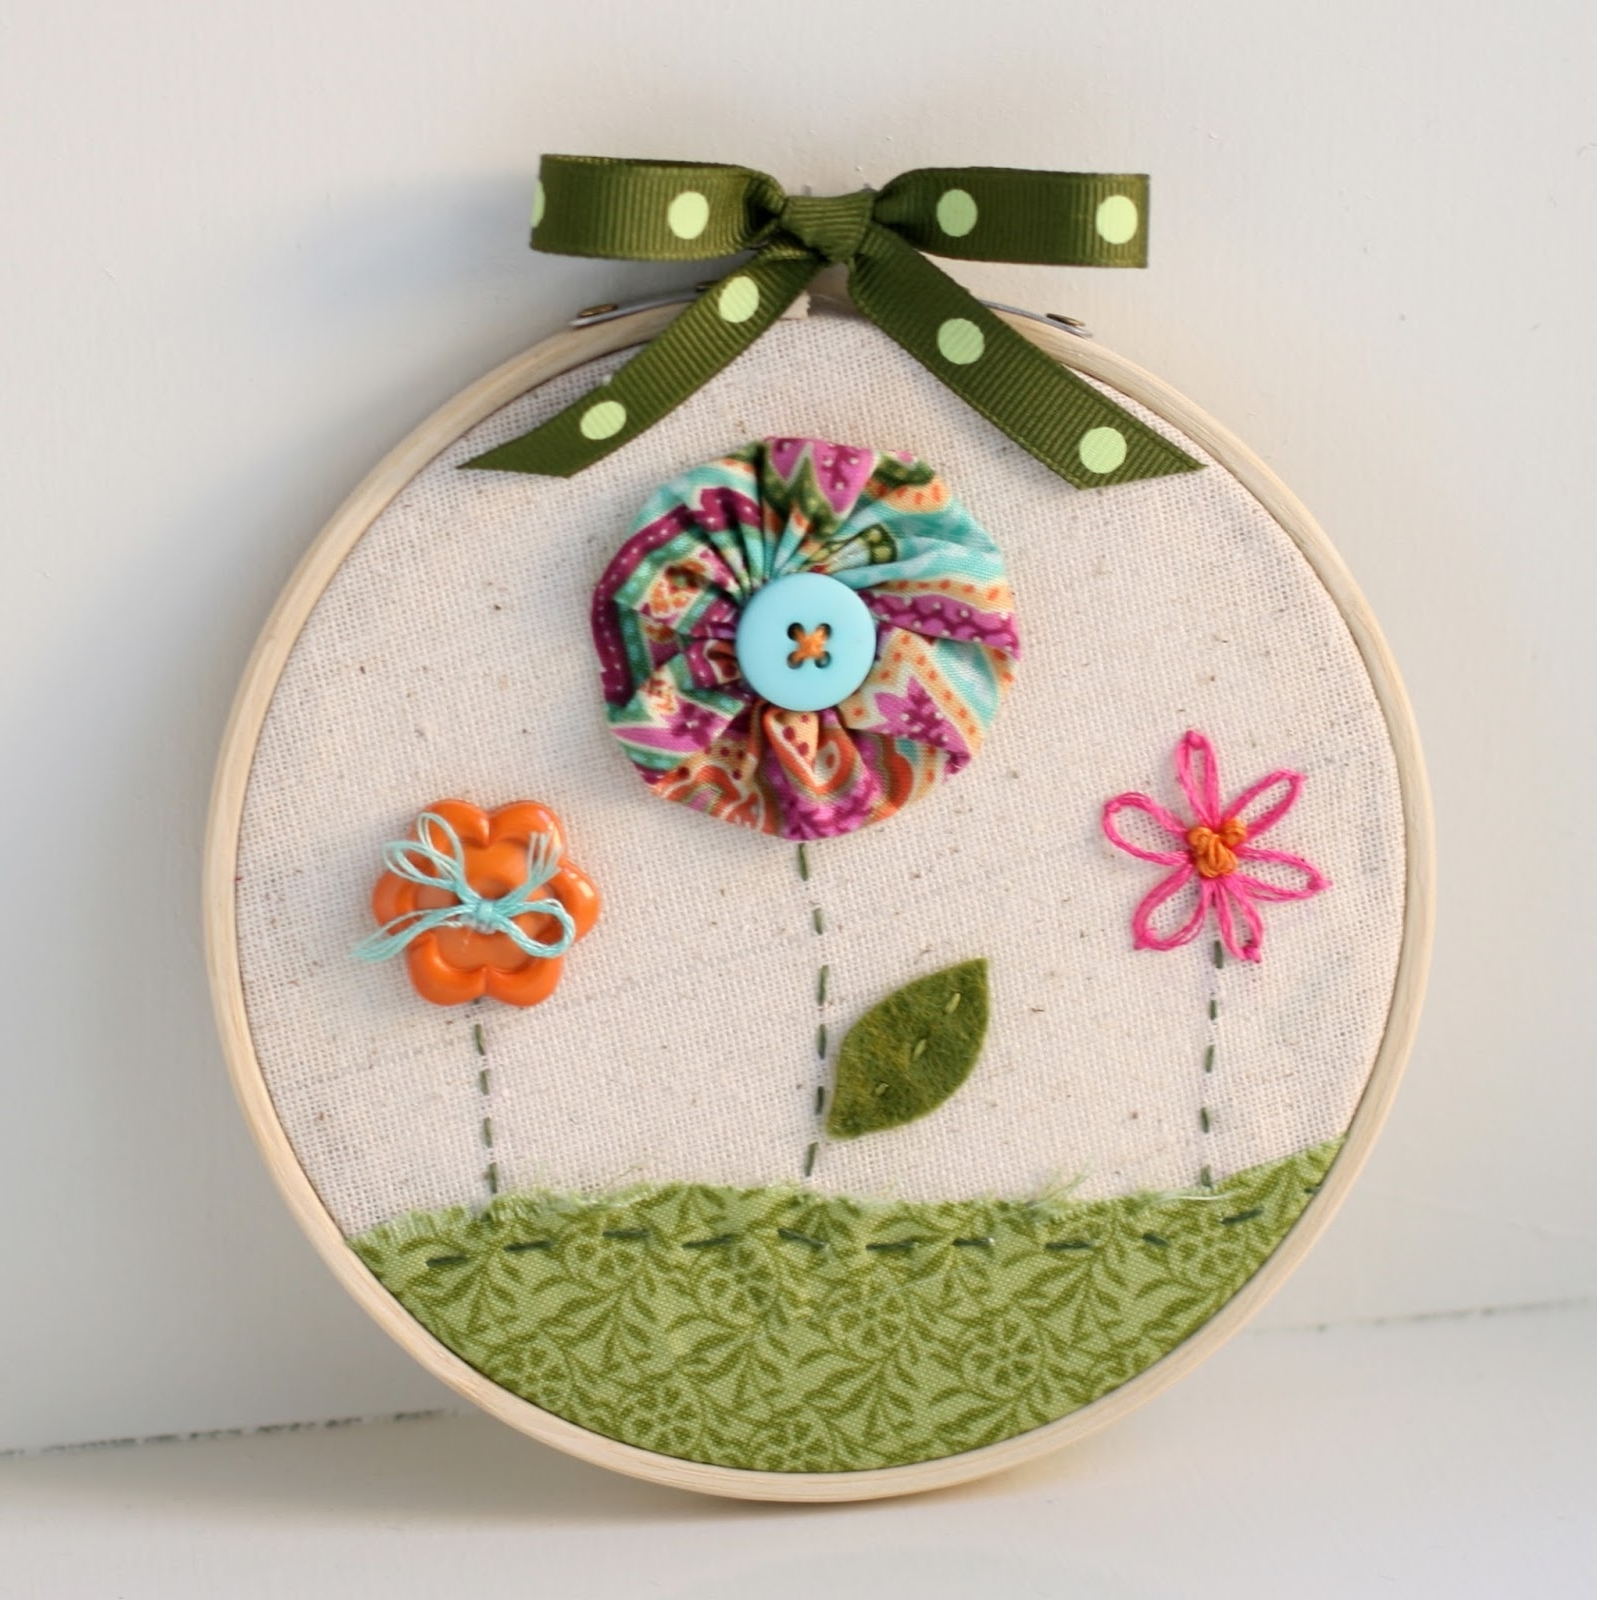 Best And Newest Bunches And Bits: Hoop Art Wall Hanging Regarding Fabric Circle Wall Art (View 1 of 15)